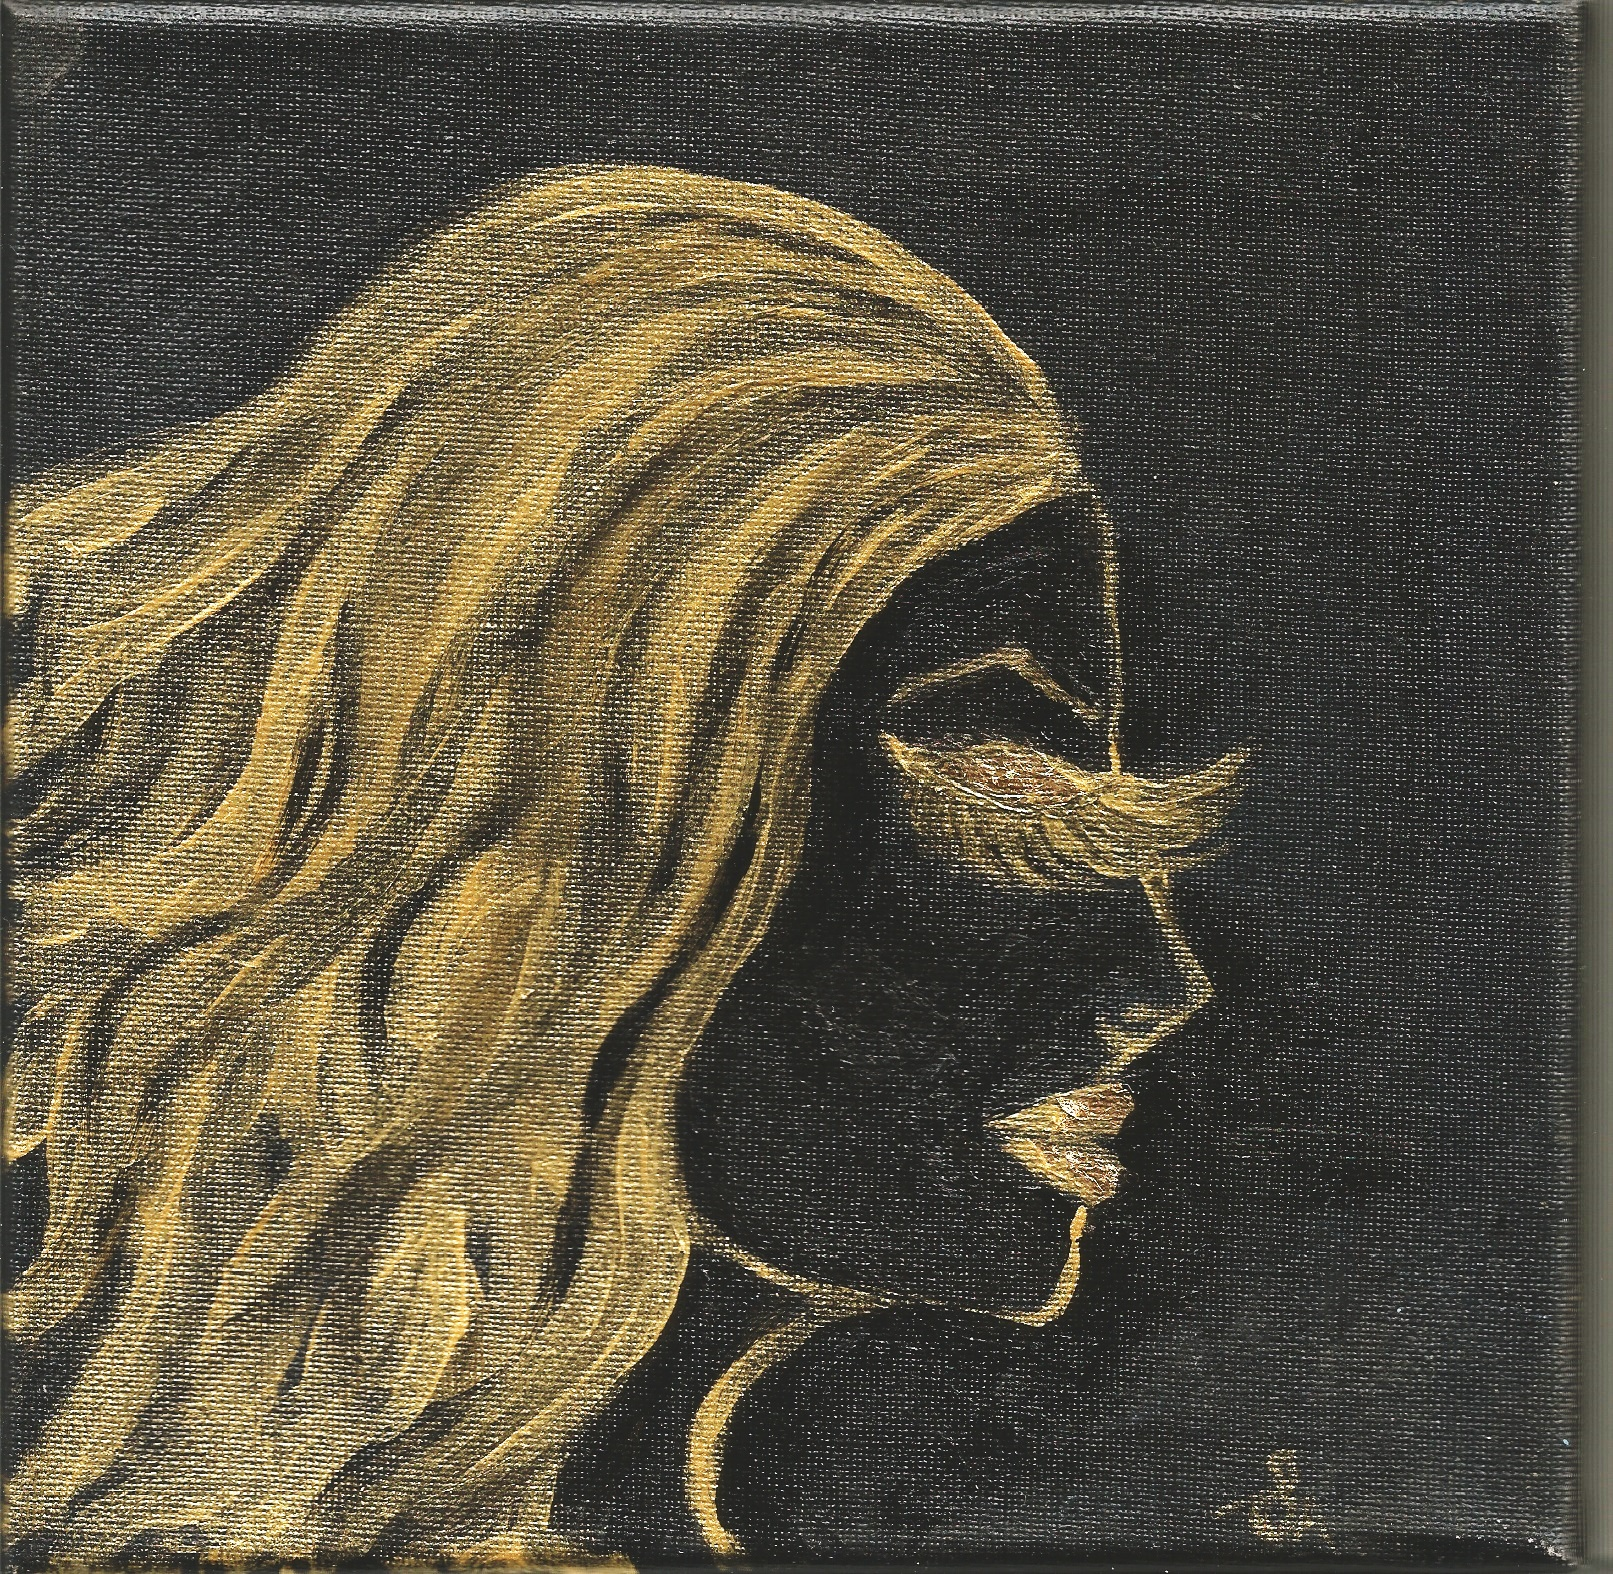 SILHOUETTE LADY GOLD ACRYLICS ON BLACK REAL GOLD LEAF 24K ON EYELIDS AND LIPS CANVAS PAINTING ORIGINAL